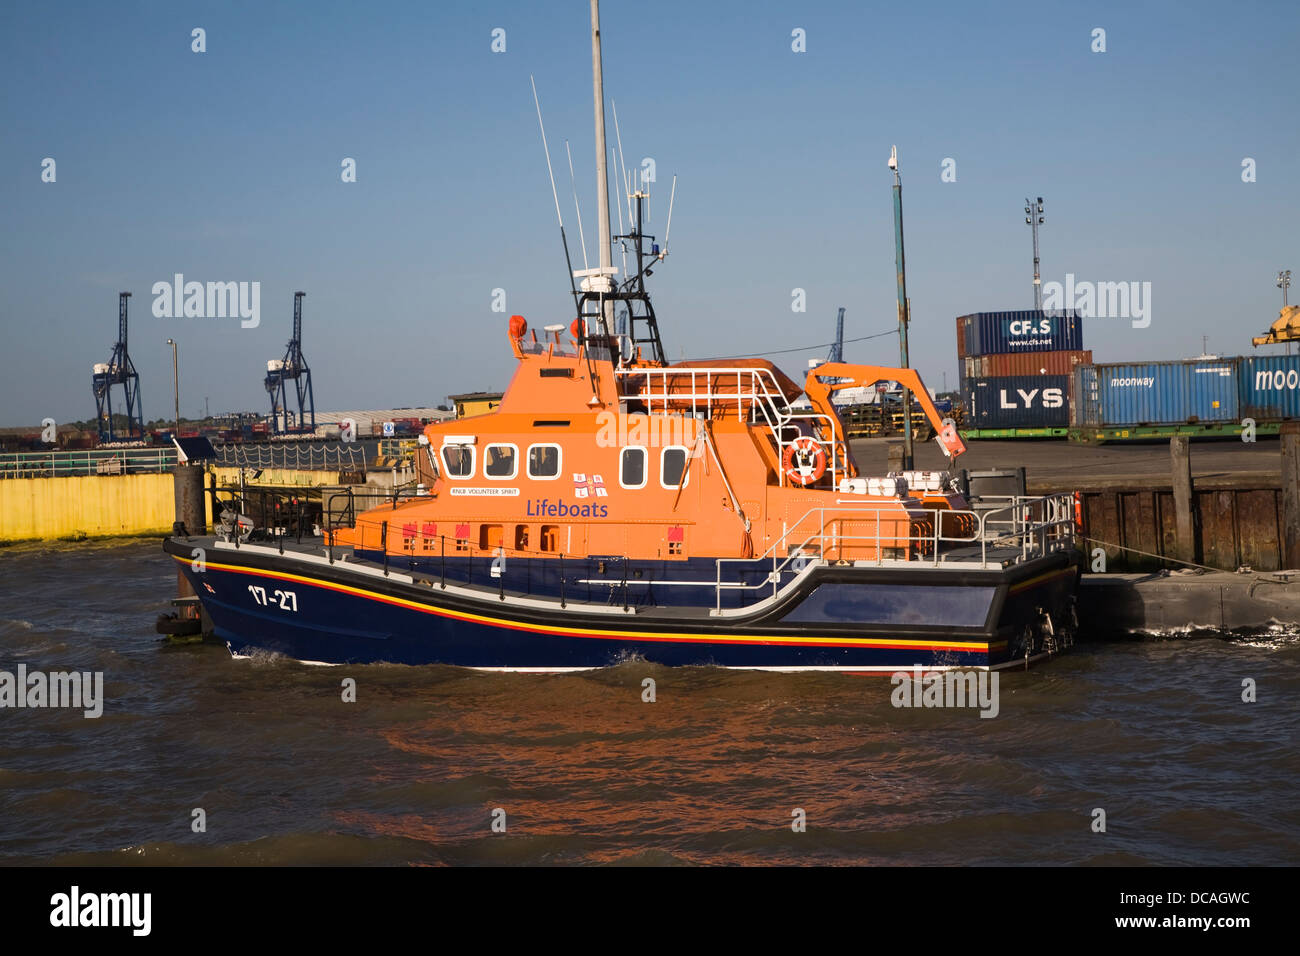 RNLI lifeboat Harwich, Essex, England - Stock Image